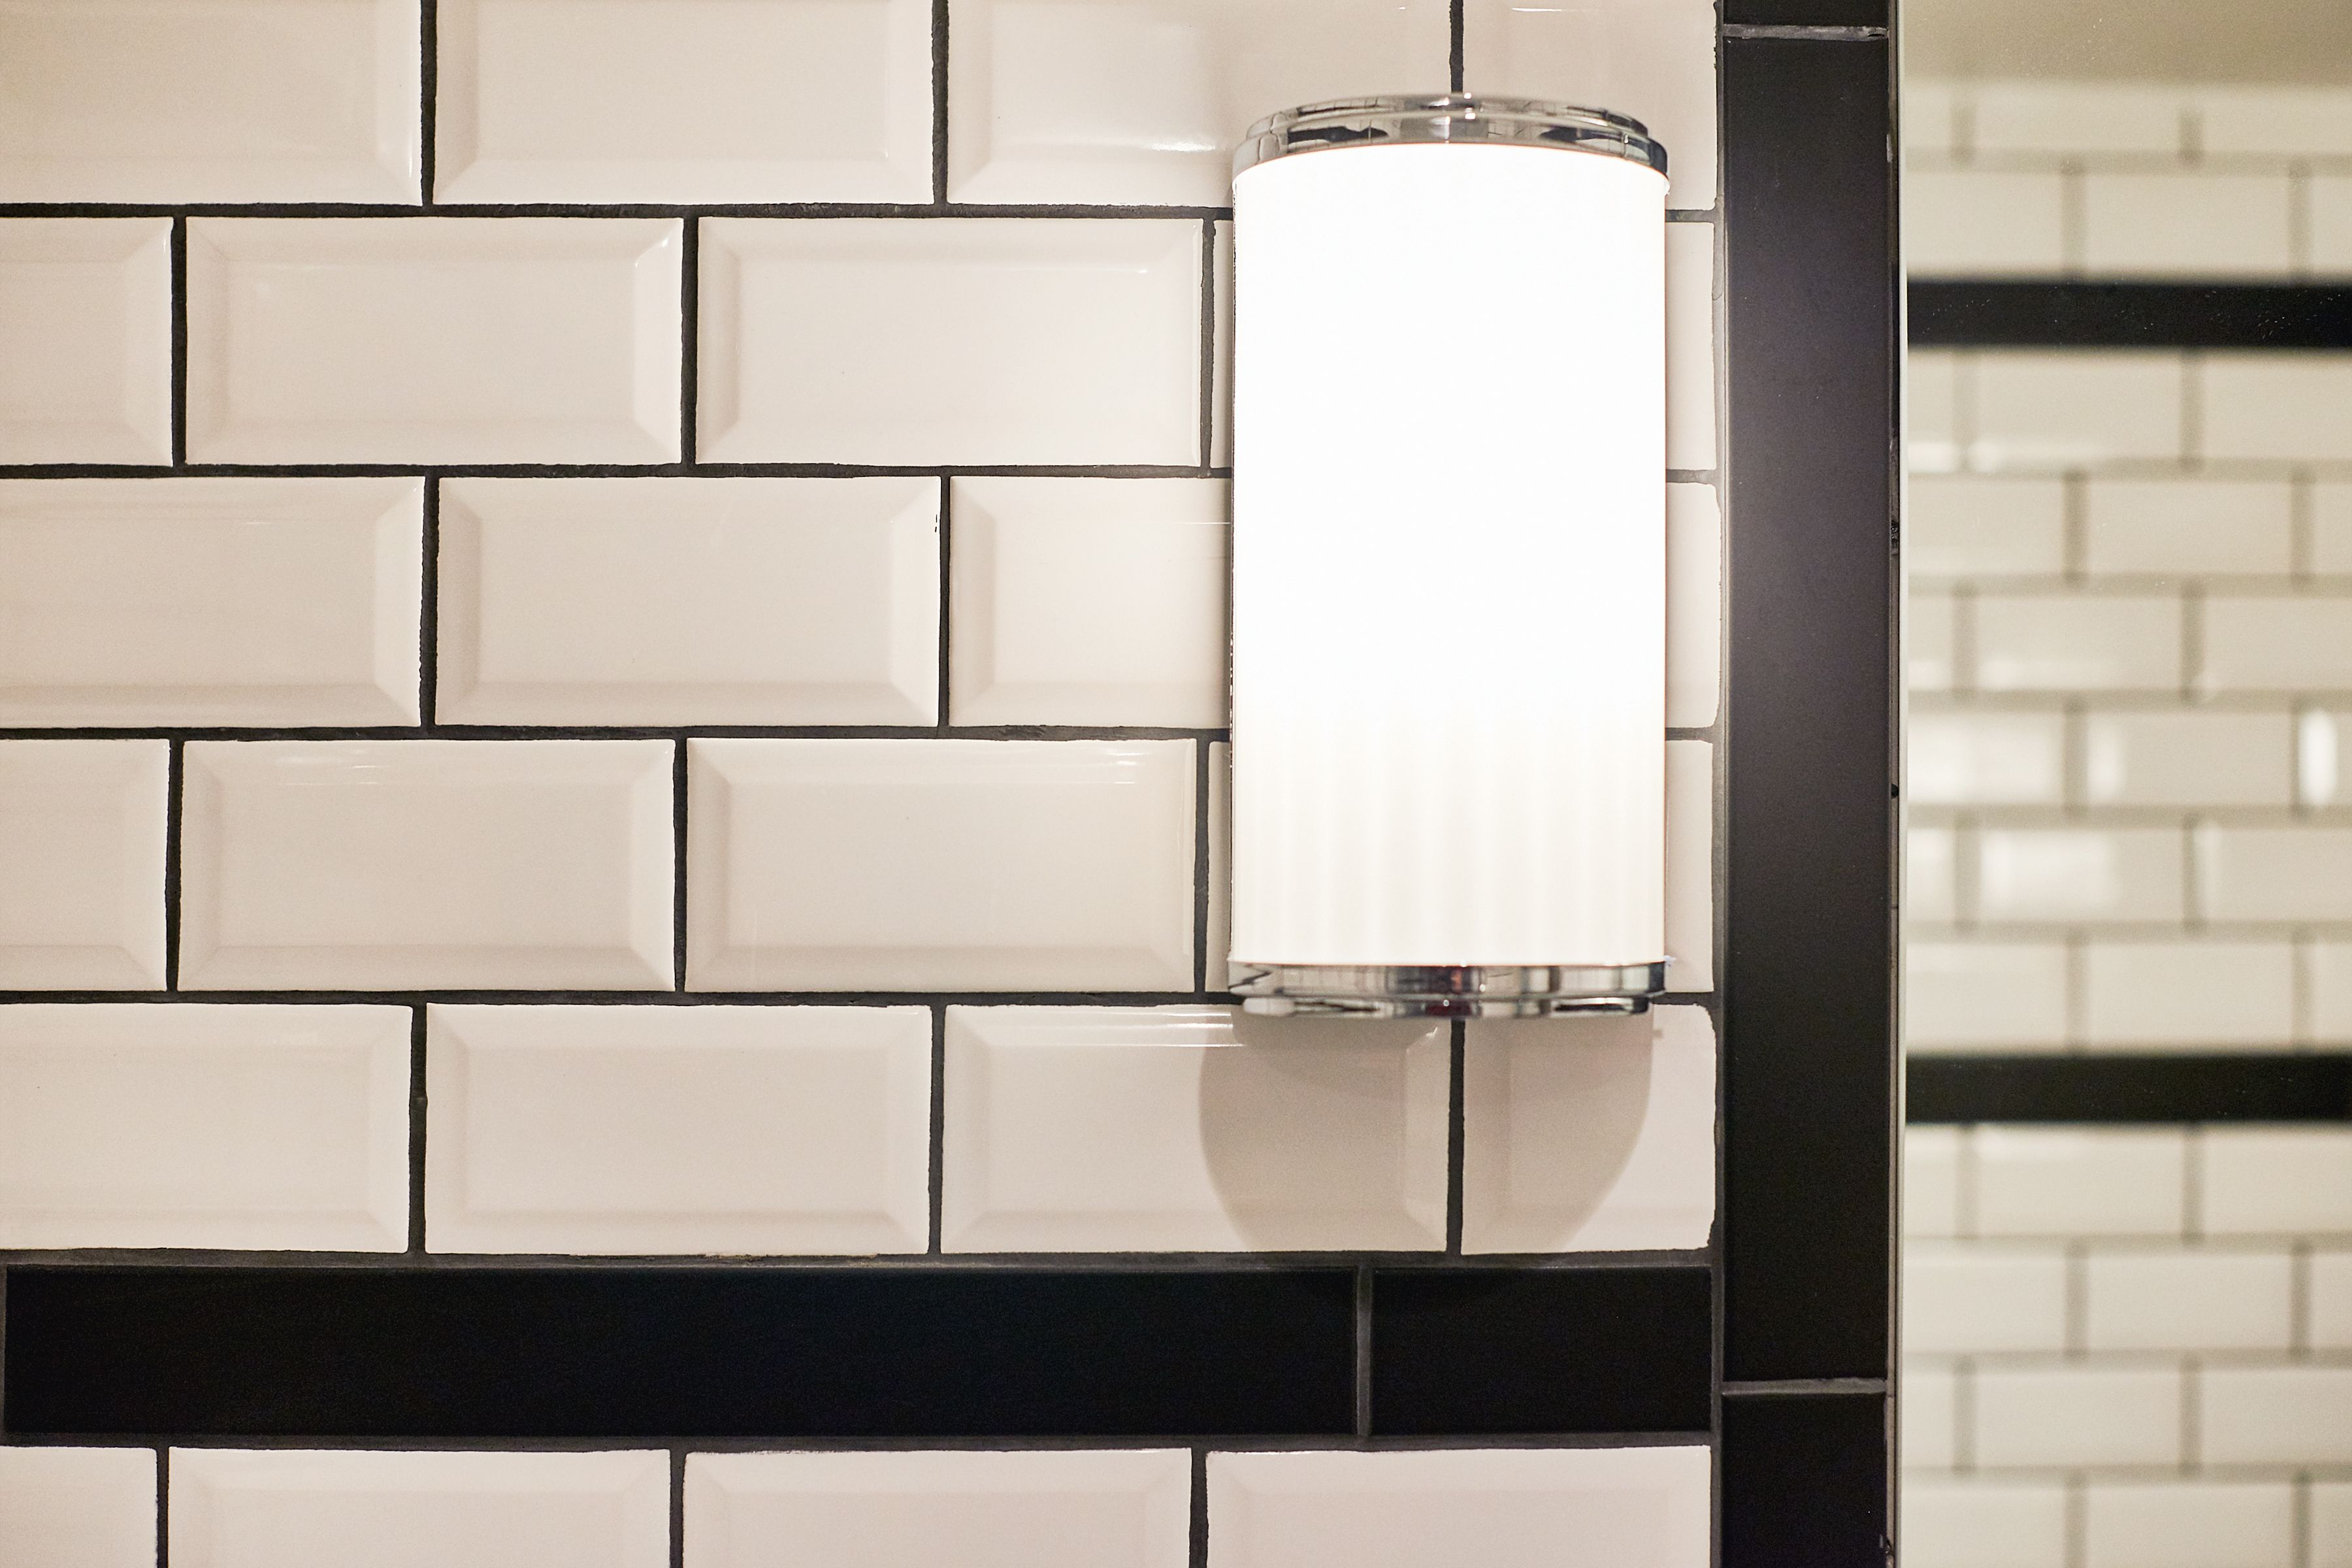 Monochrome Black And White Metro Tiles With Vertical Line Borders